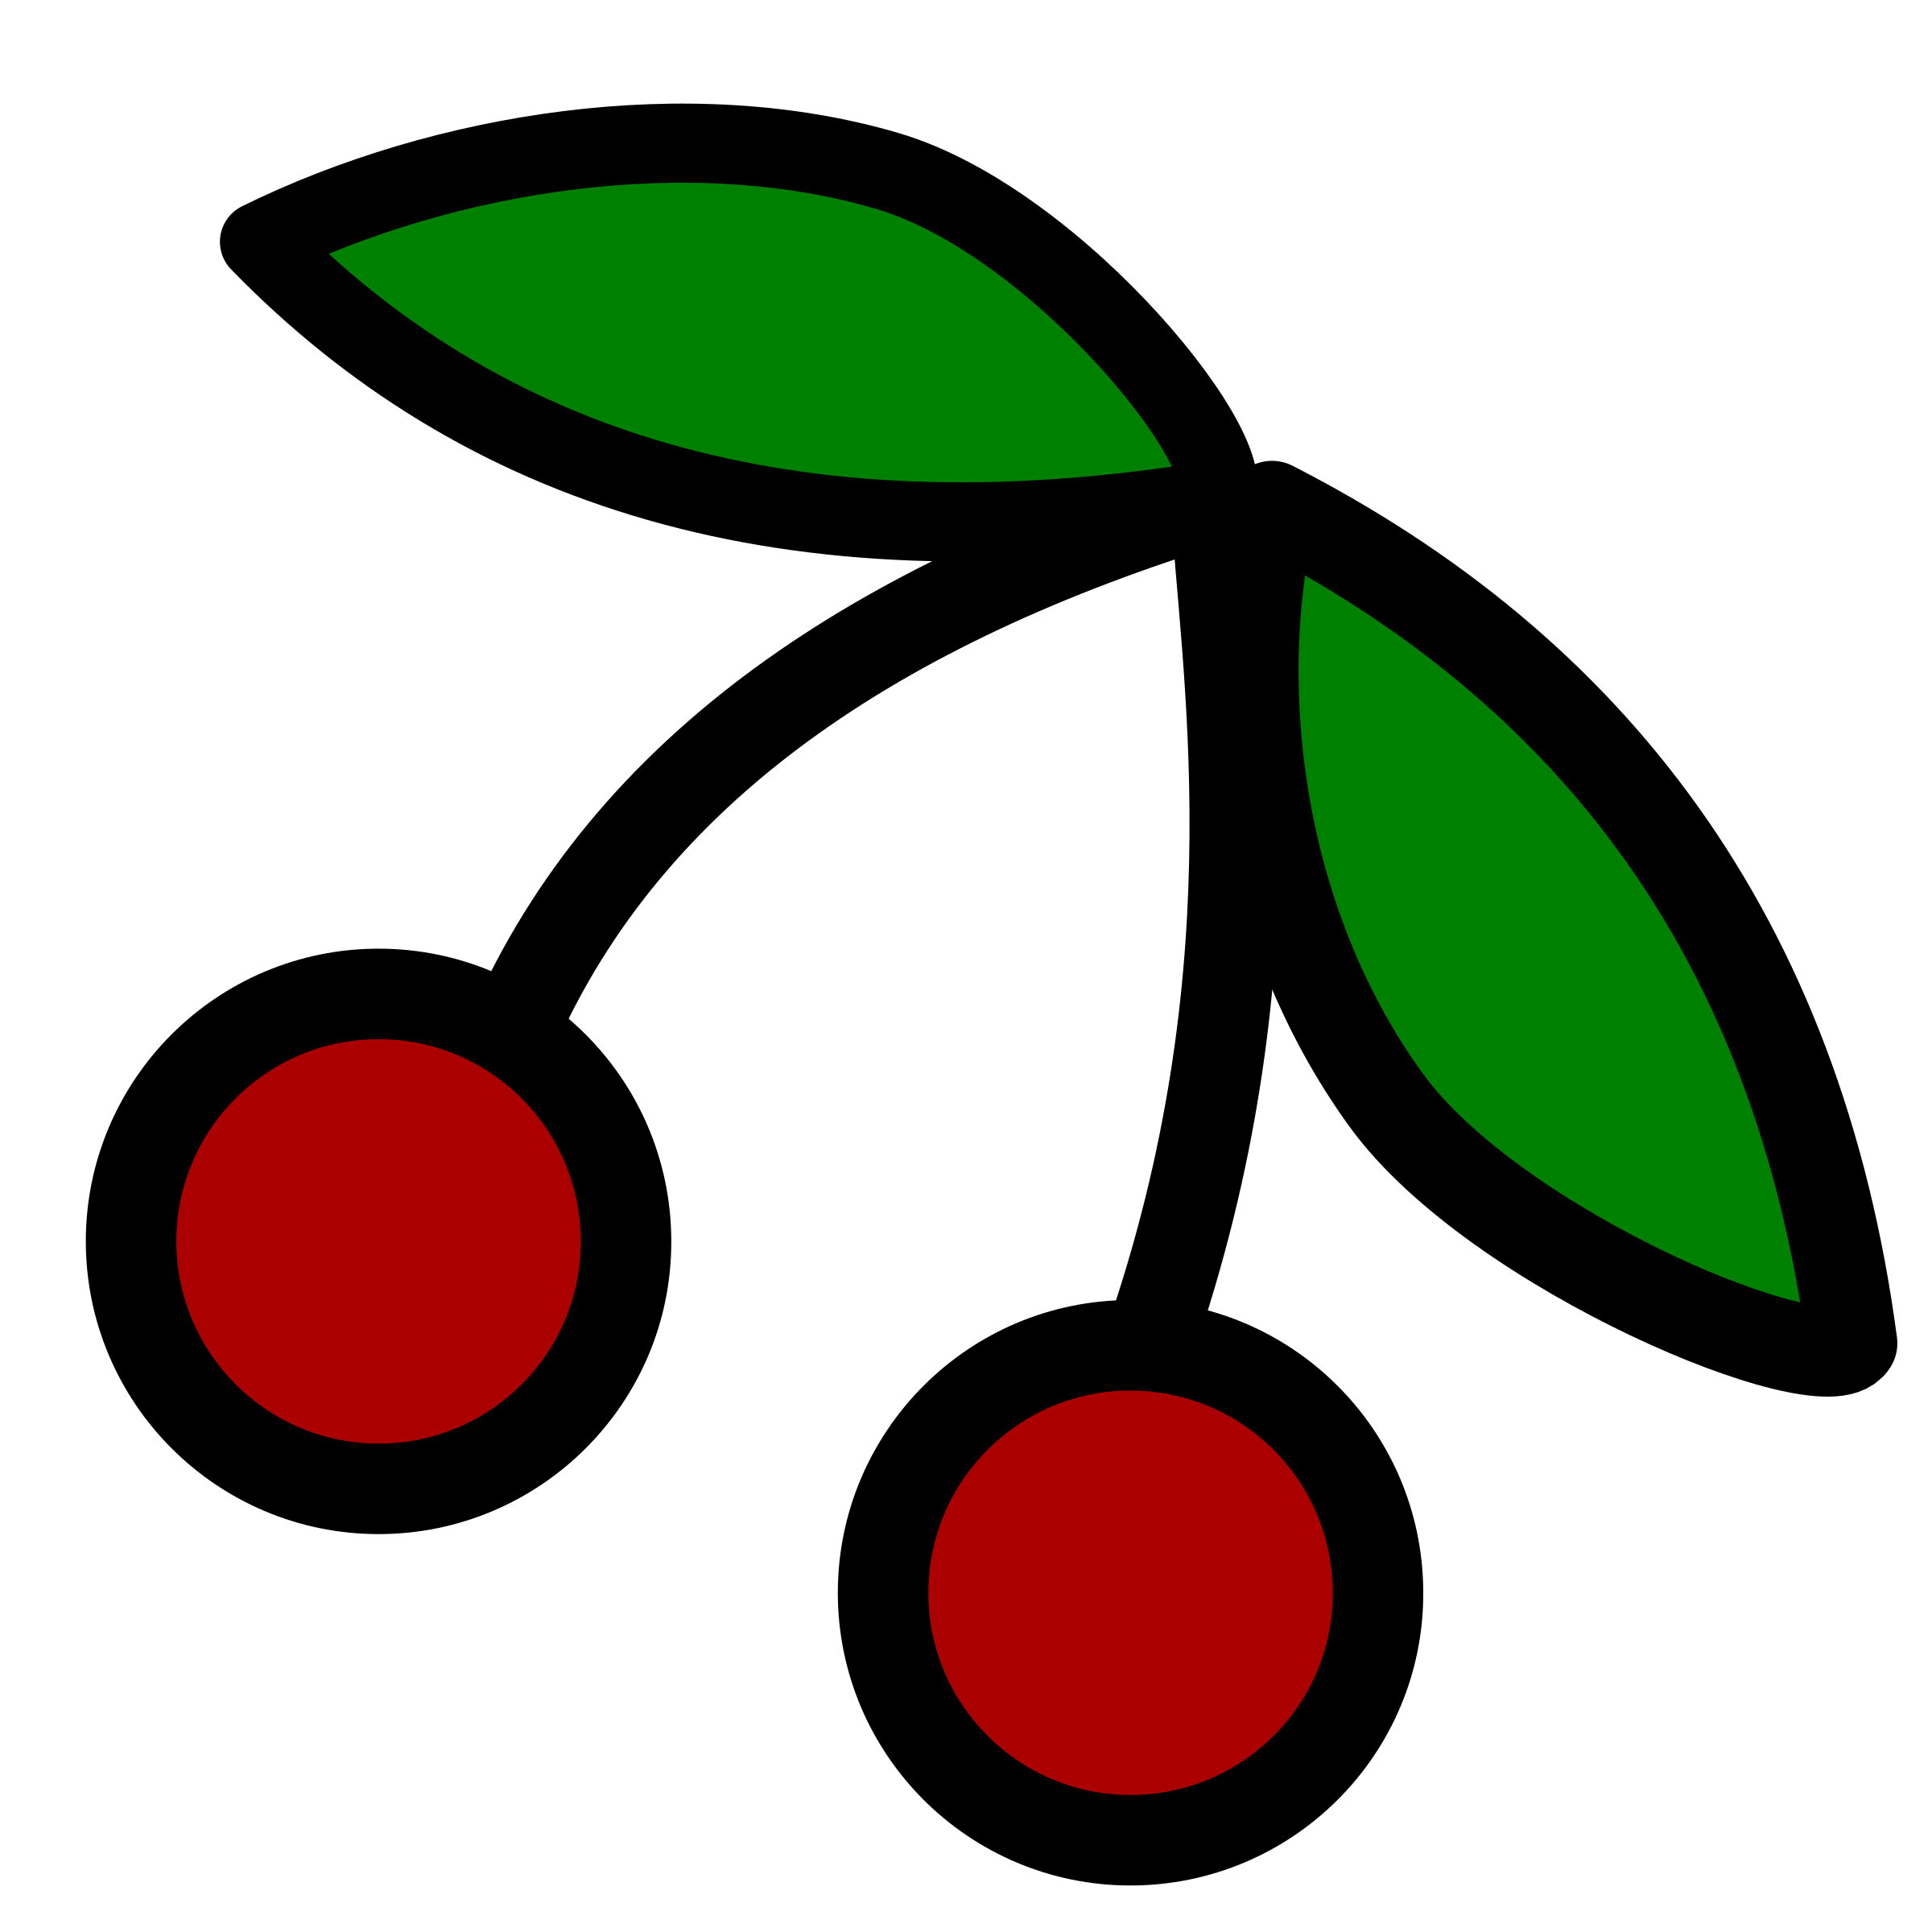 Cherries icon by pitr